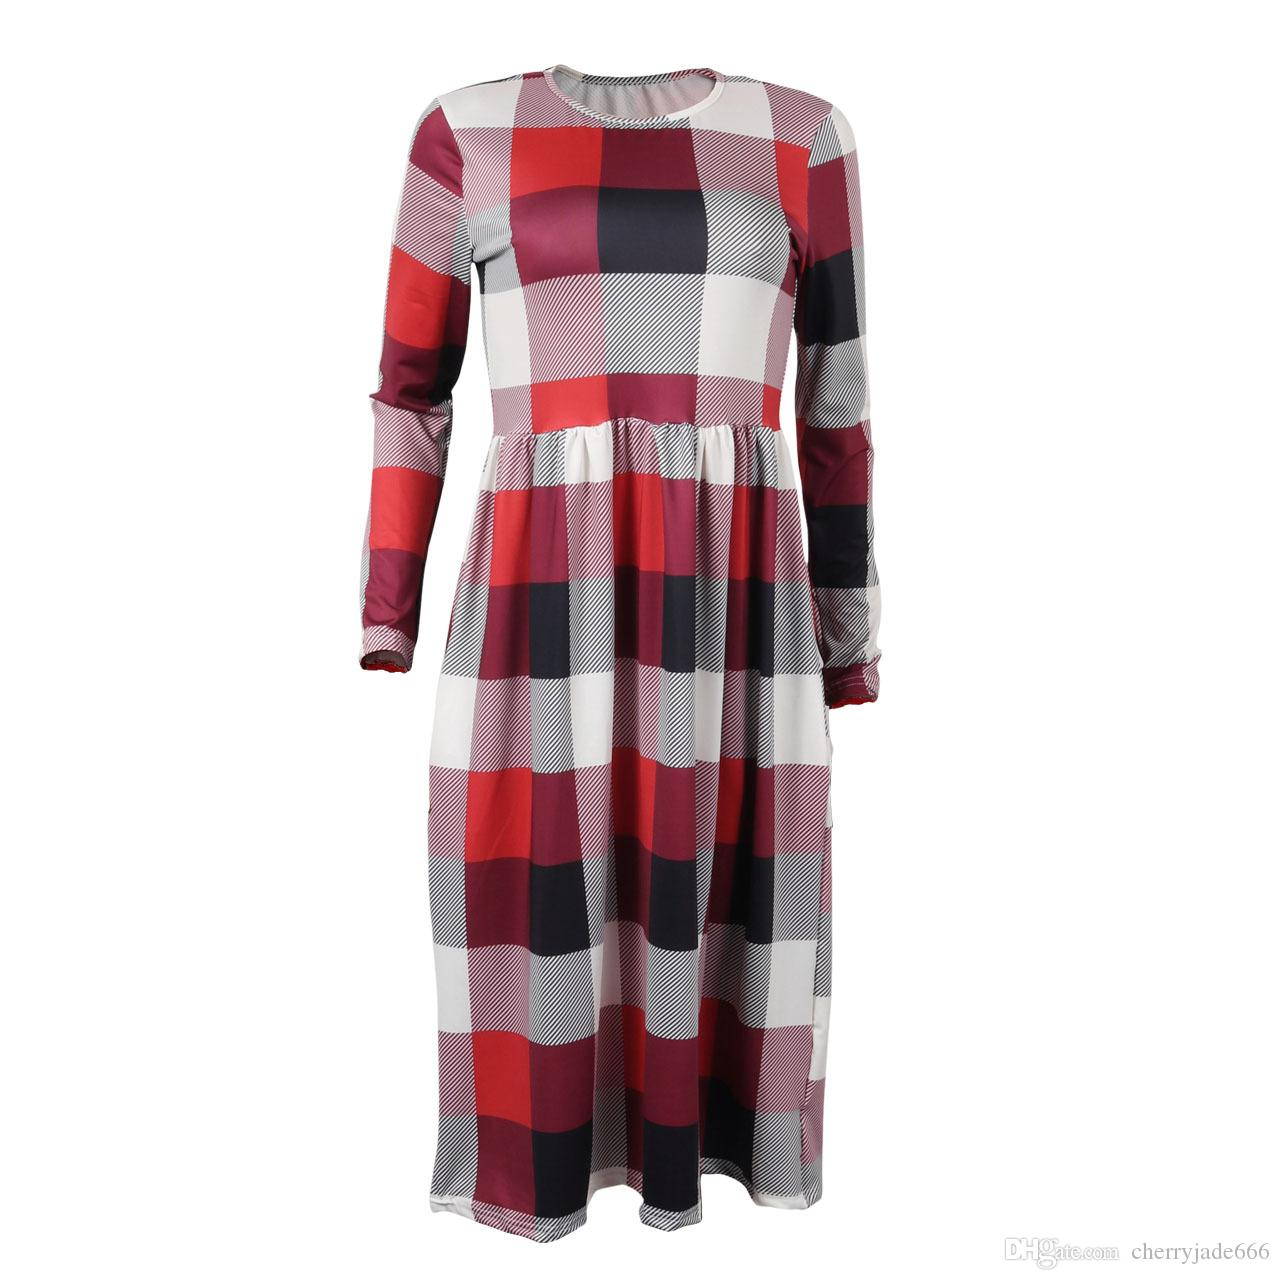 2017 autumn winter dress new long sleeve o-neck plaid dress womens long dress red/green check with pocket